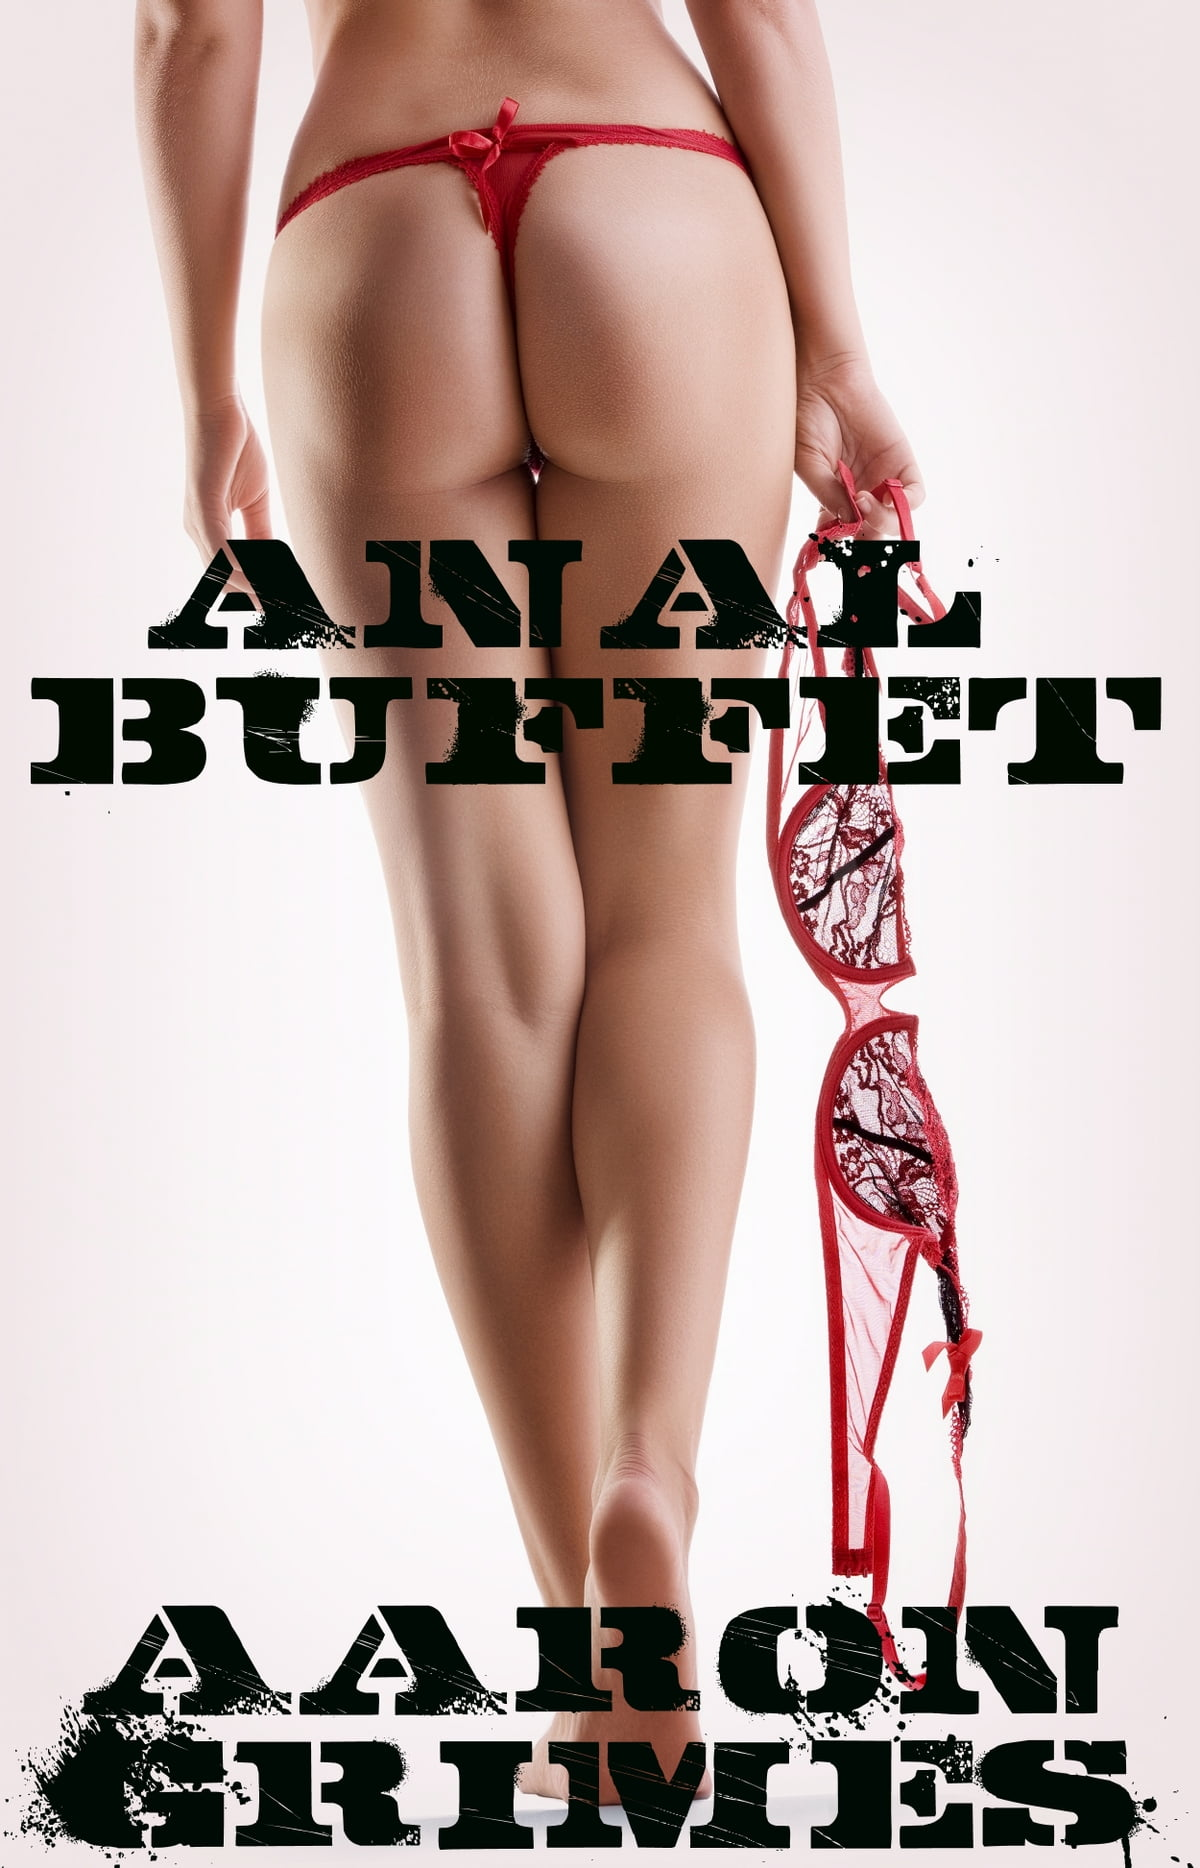 Anal Annie And The Backdoor Housewives anal buffet ebookaaron grimes - 9781301902675 | rakuten kobo